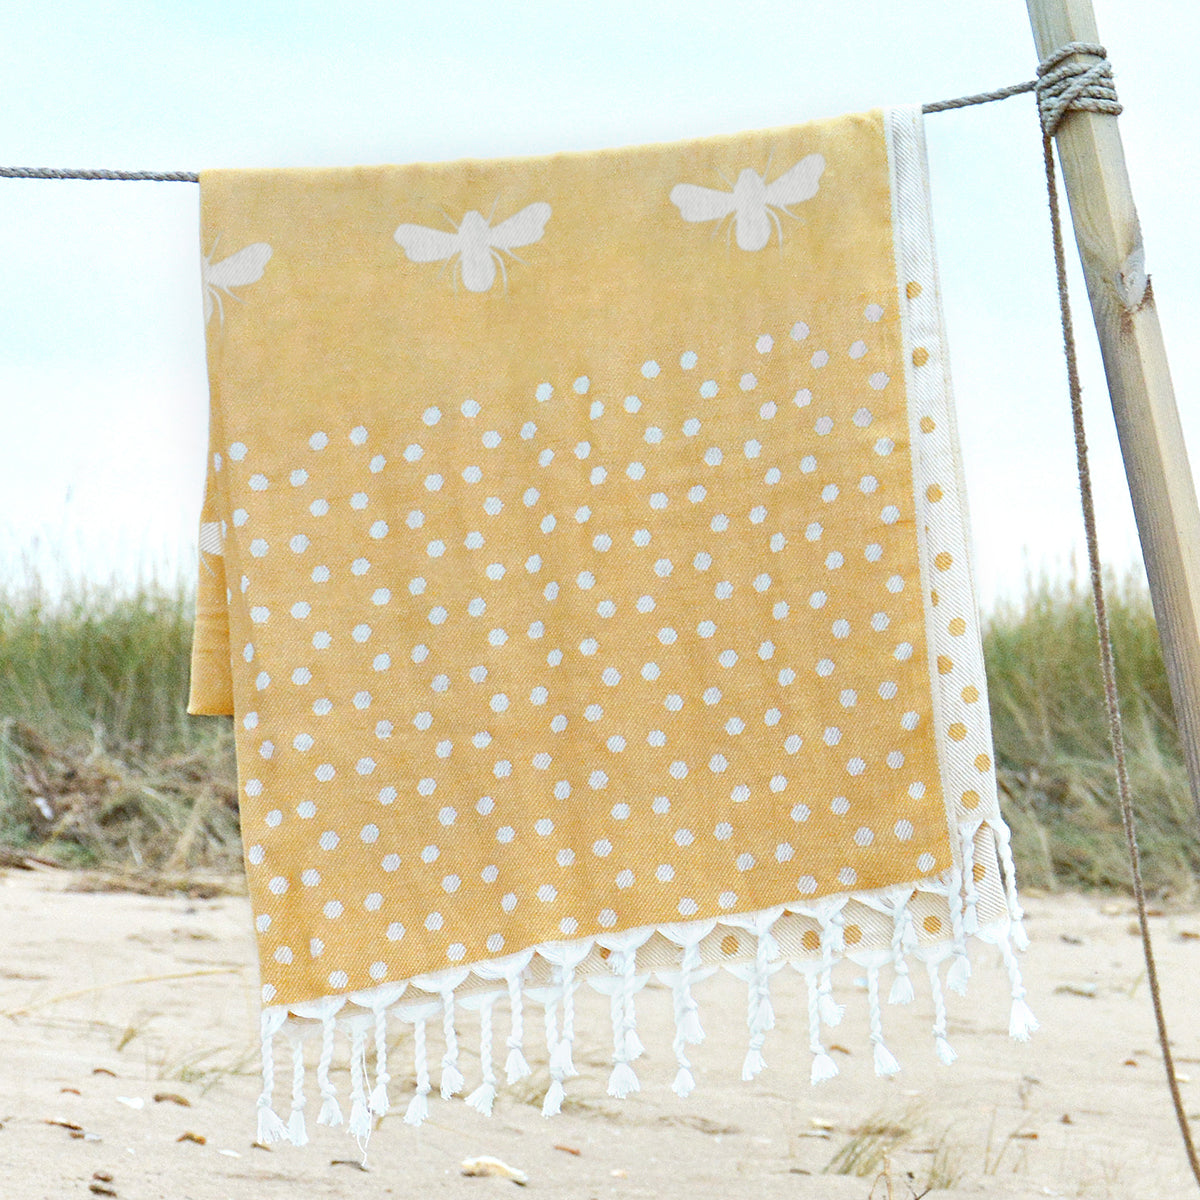 Sophie Allport's yellow hammam towel covered white bees, perfect for the park or beach.